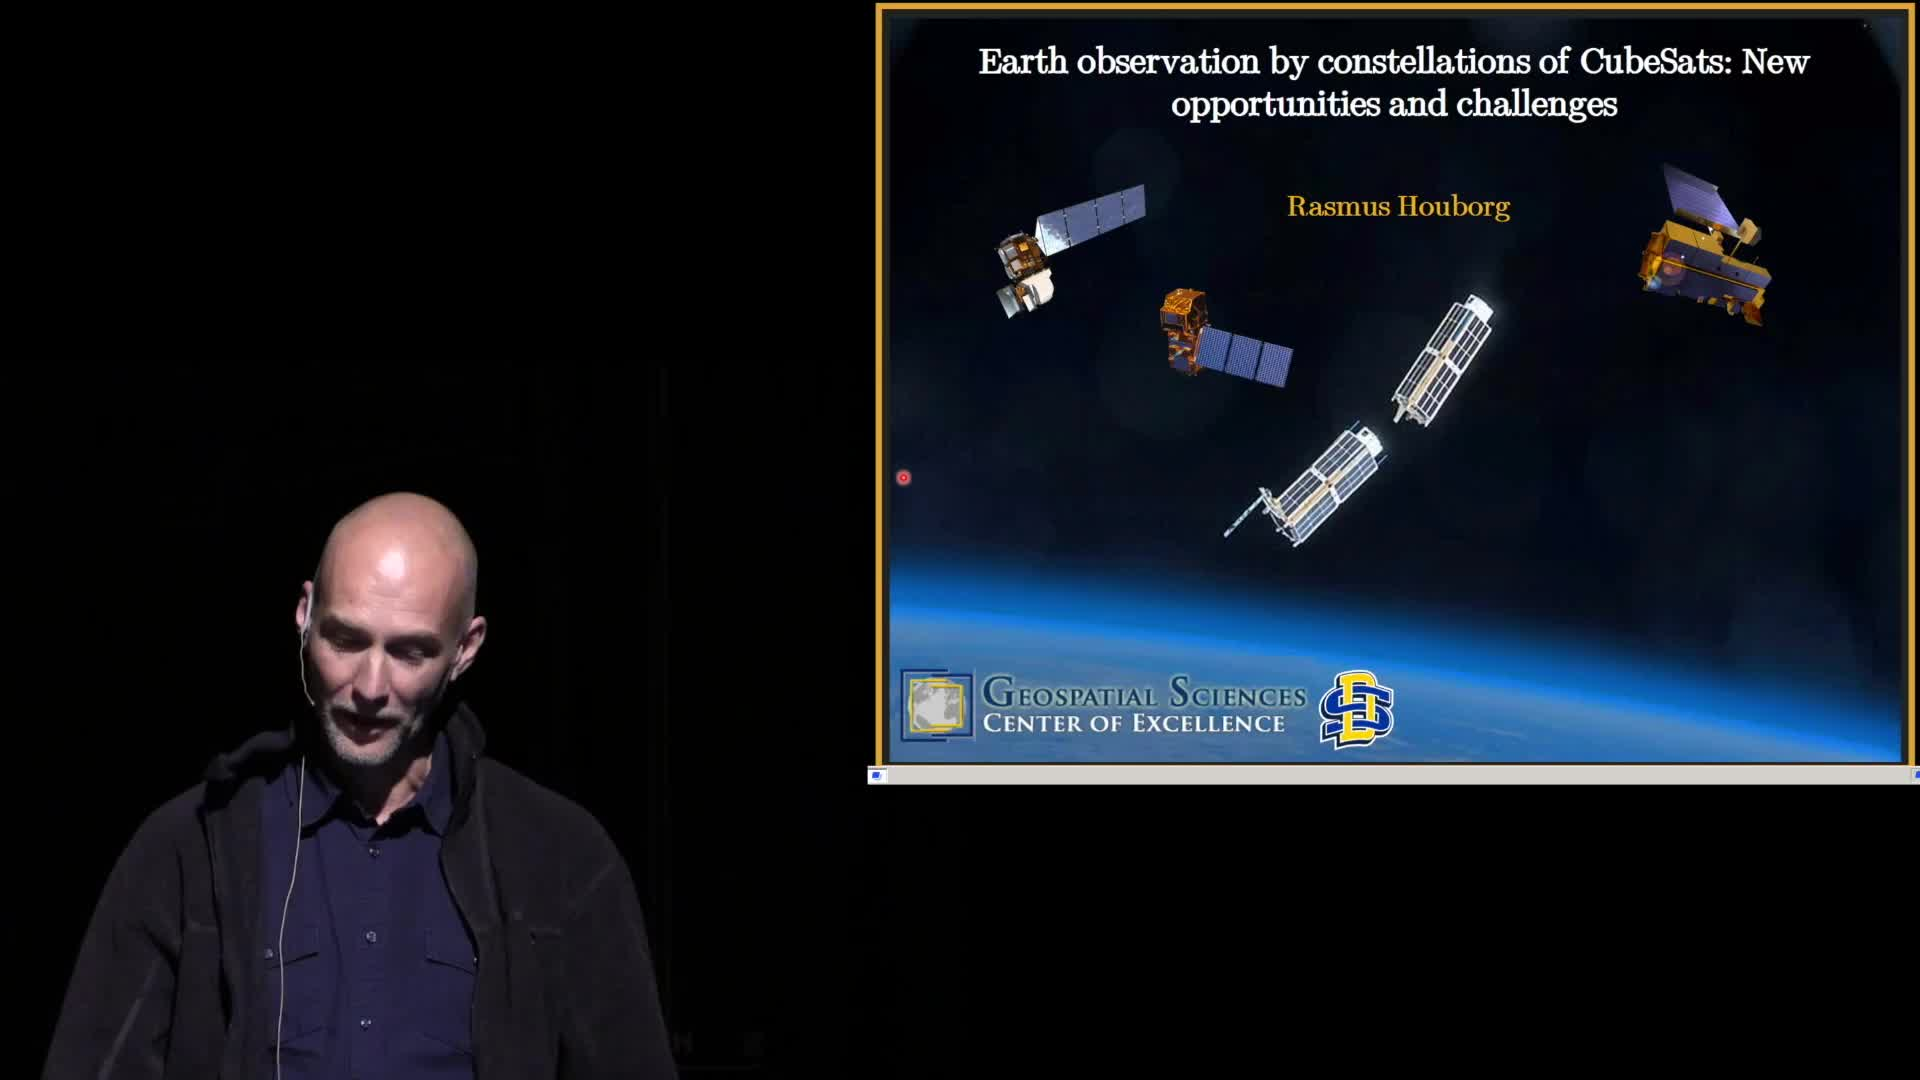 Earth observation by constellations of CubeSats: New opportunities and challenges